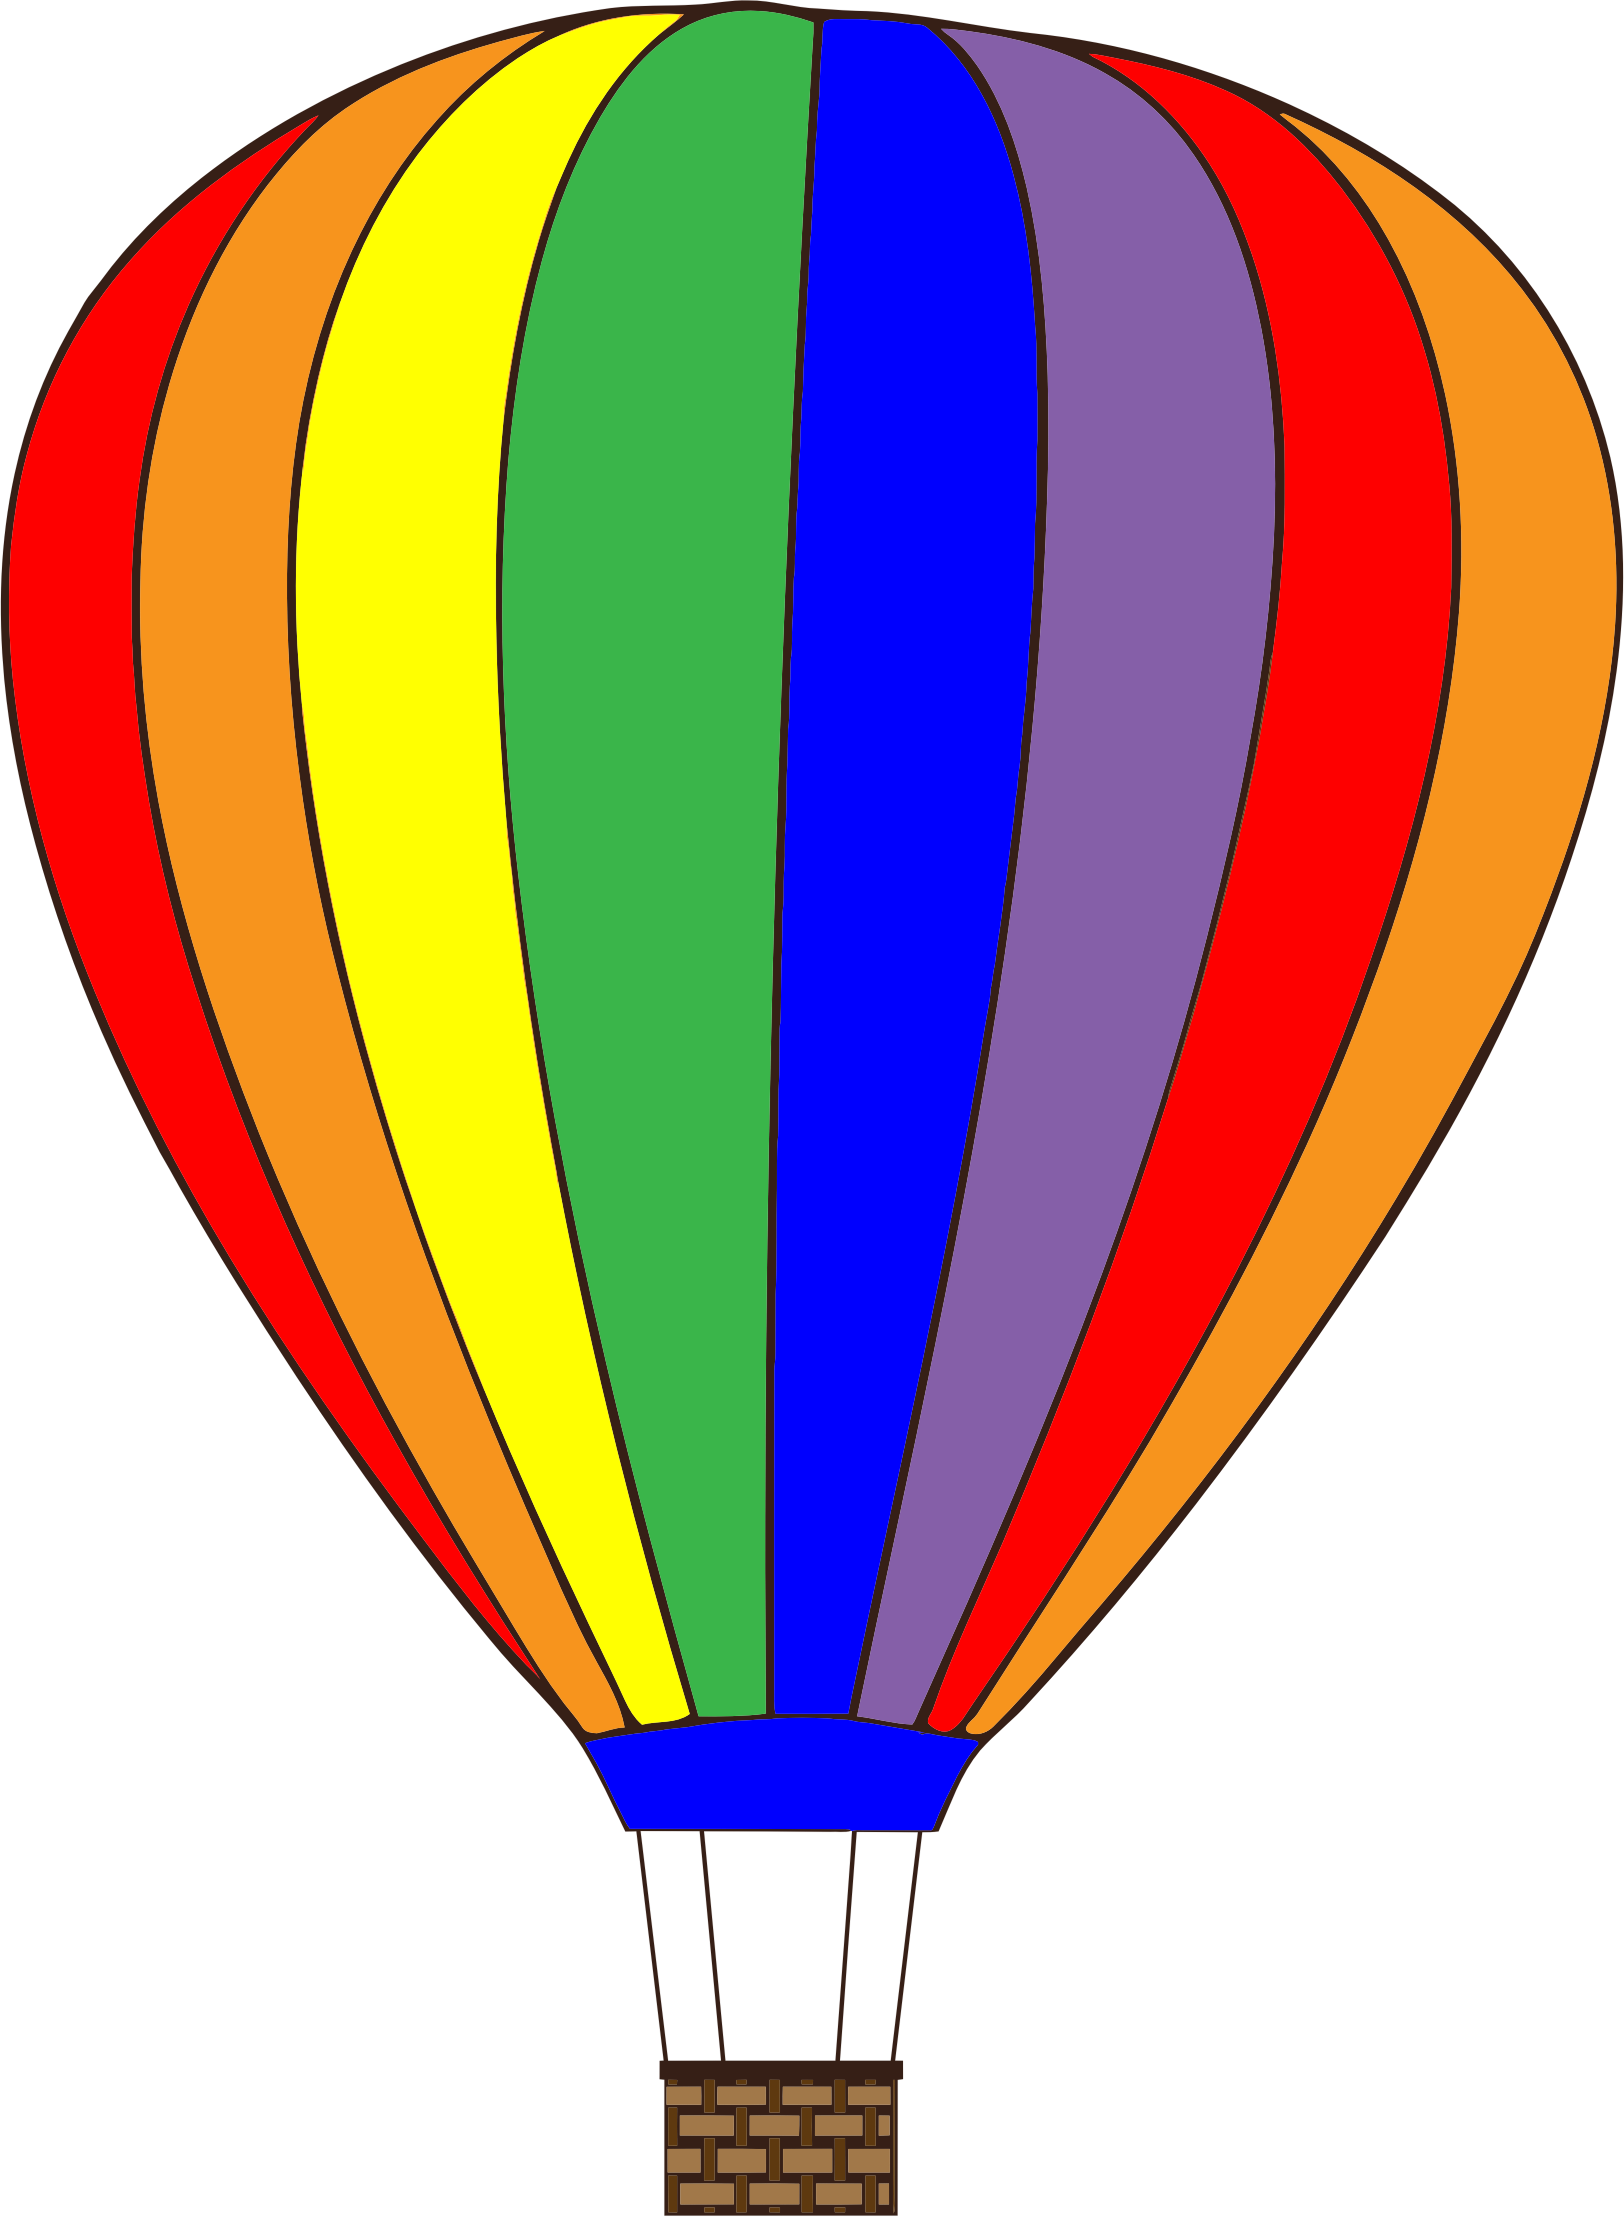 Puzzle clipart bridge. Colorful hot air balloon